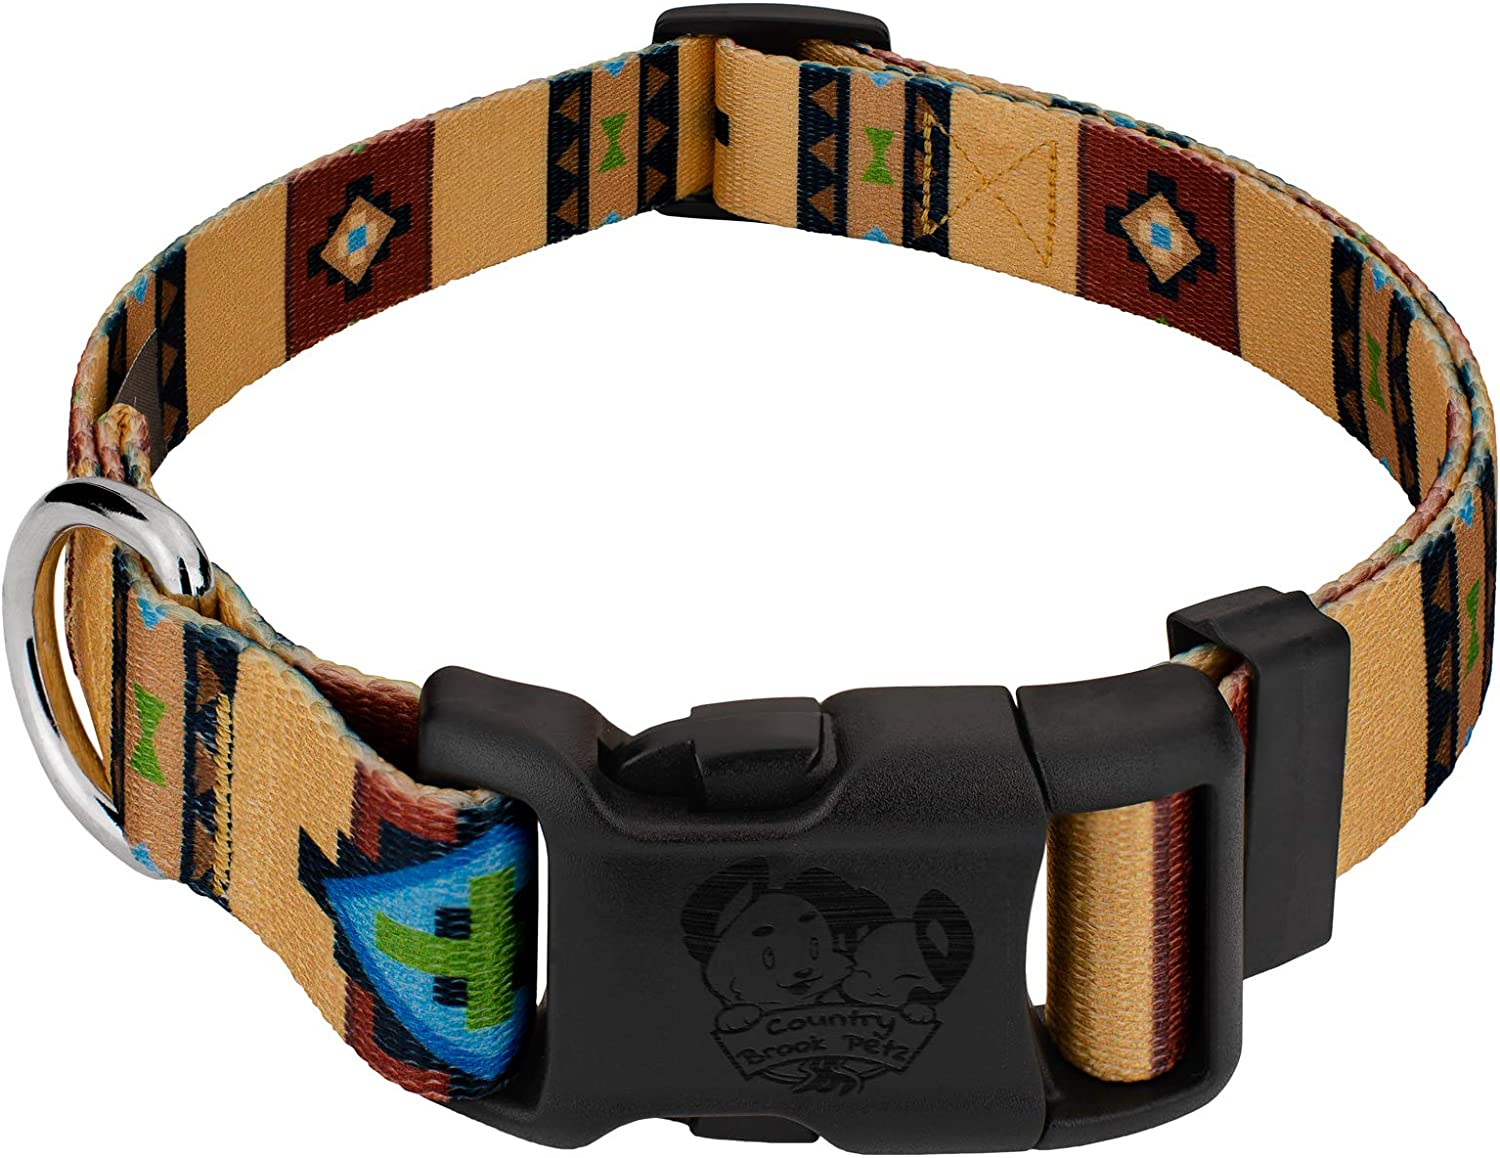 Max 43% OFF Country Brook Design - Deluxe Dog Collar and Super popular specialty store C Western